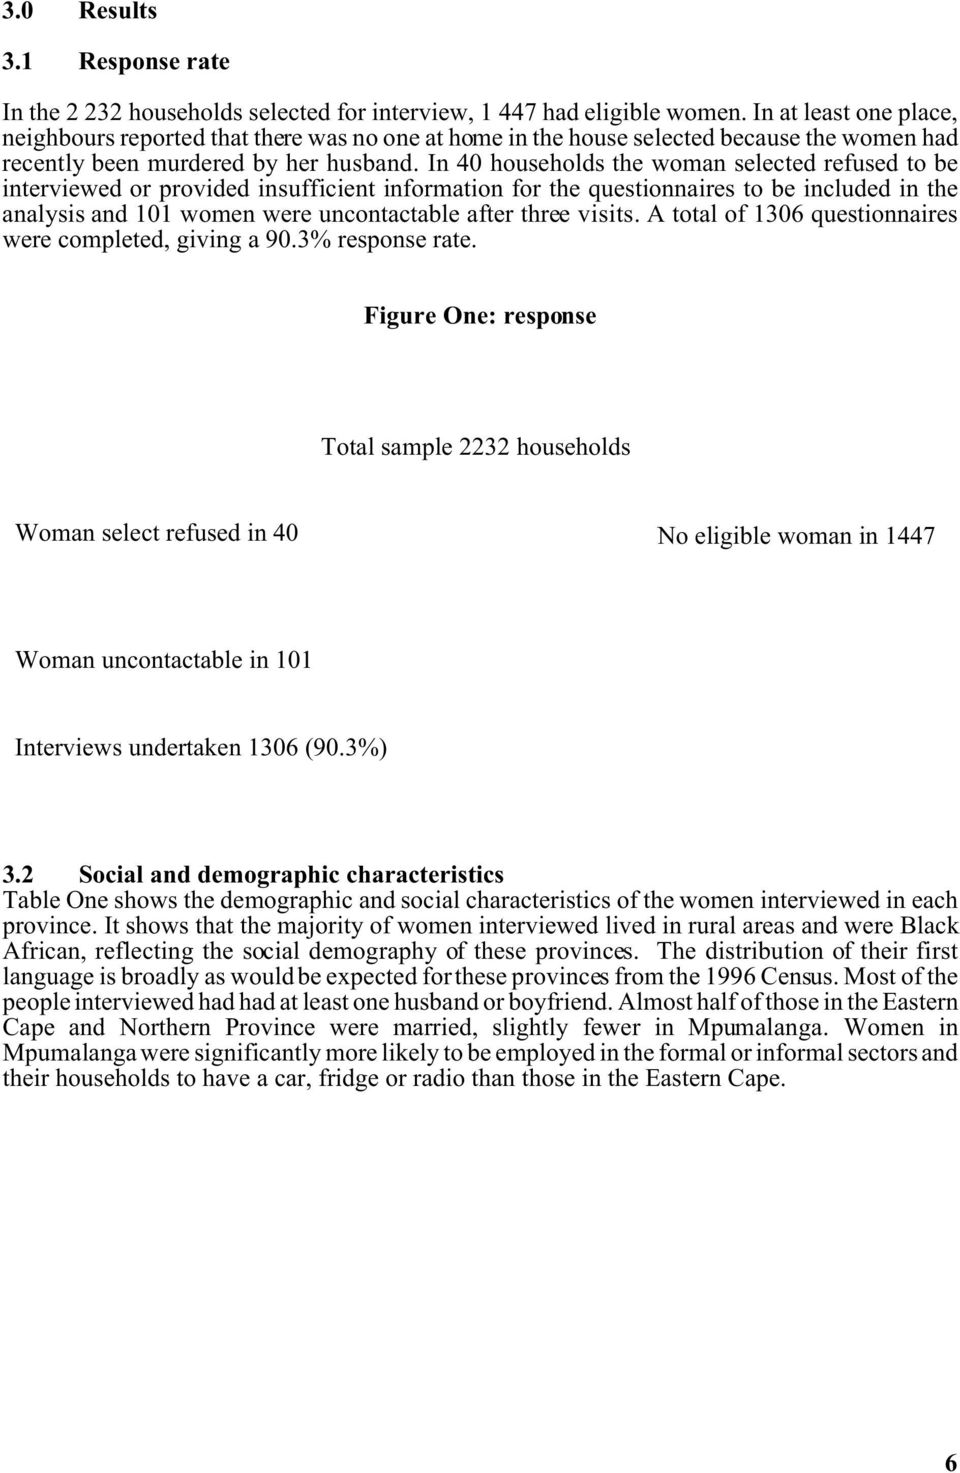 In 40 households the woman selected refused to be interviewed or provided insufficient information for the questionnaires to be included in the analysis and 101 women were uncontactable after three